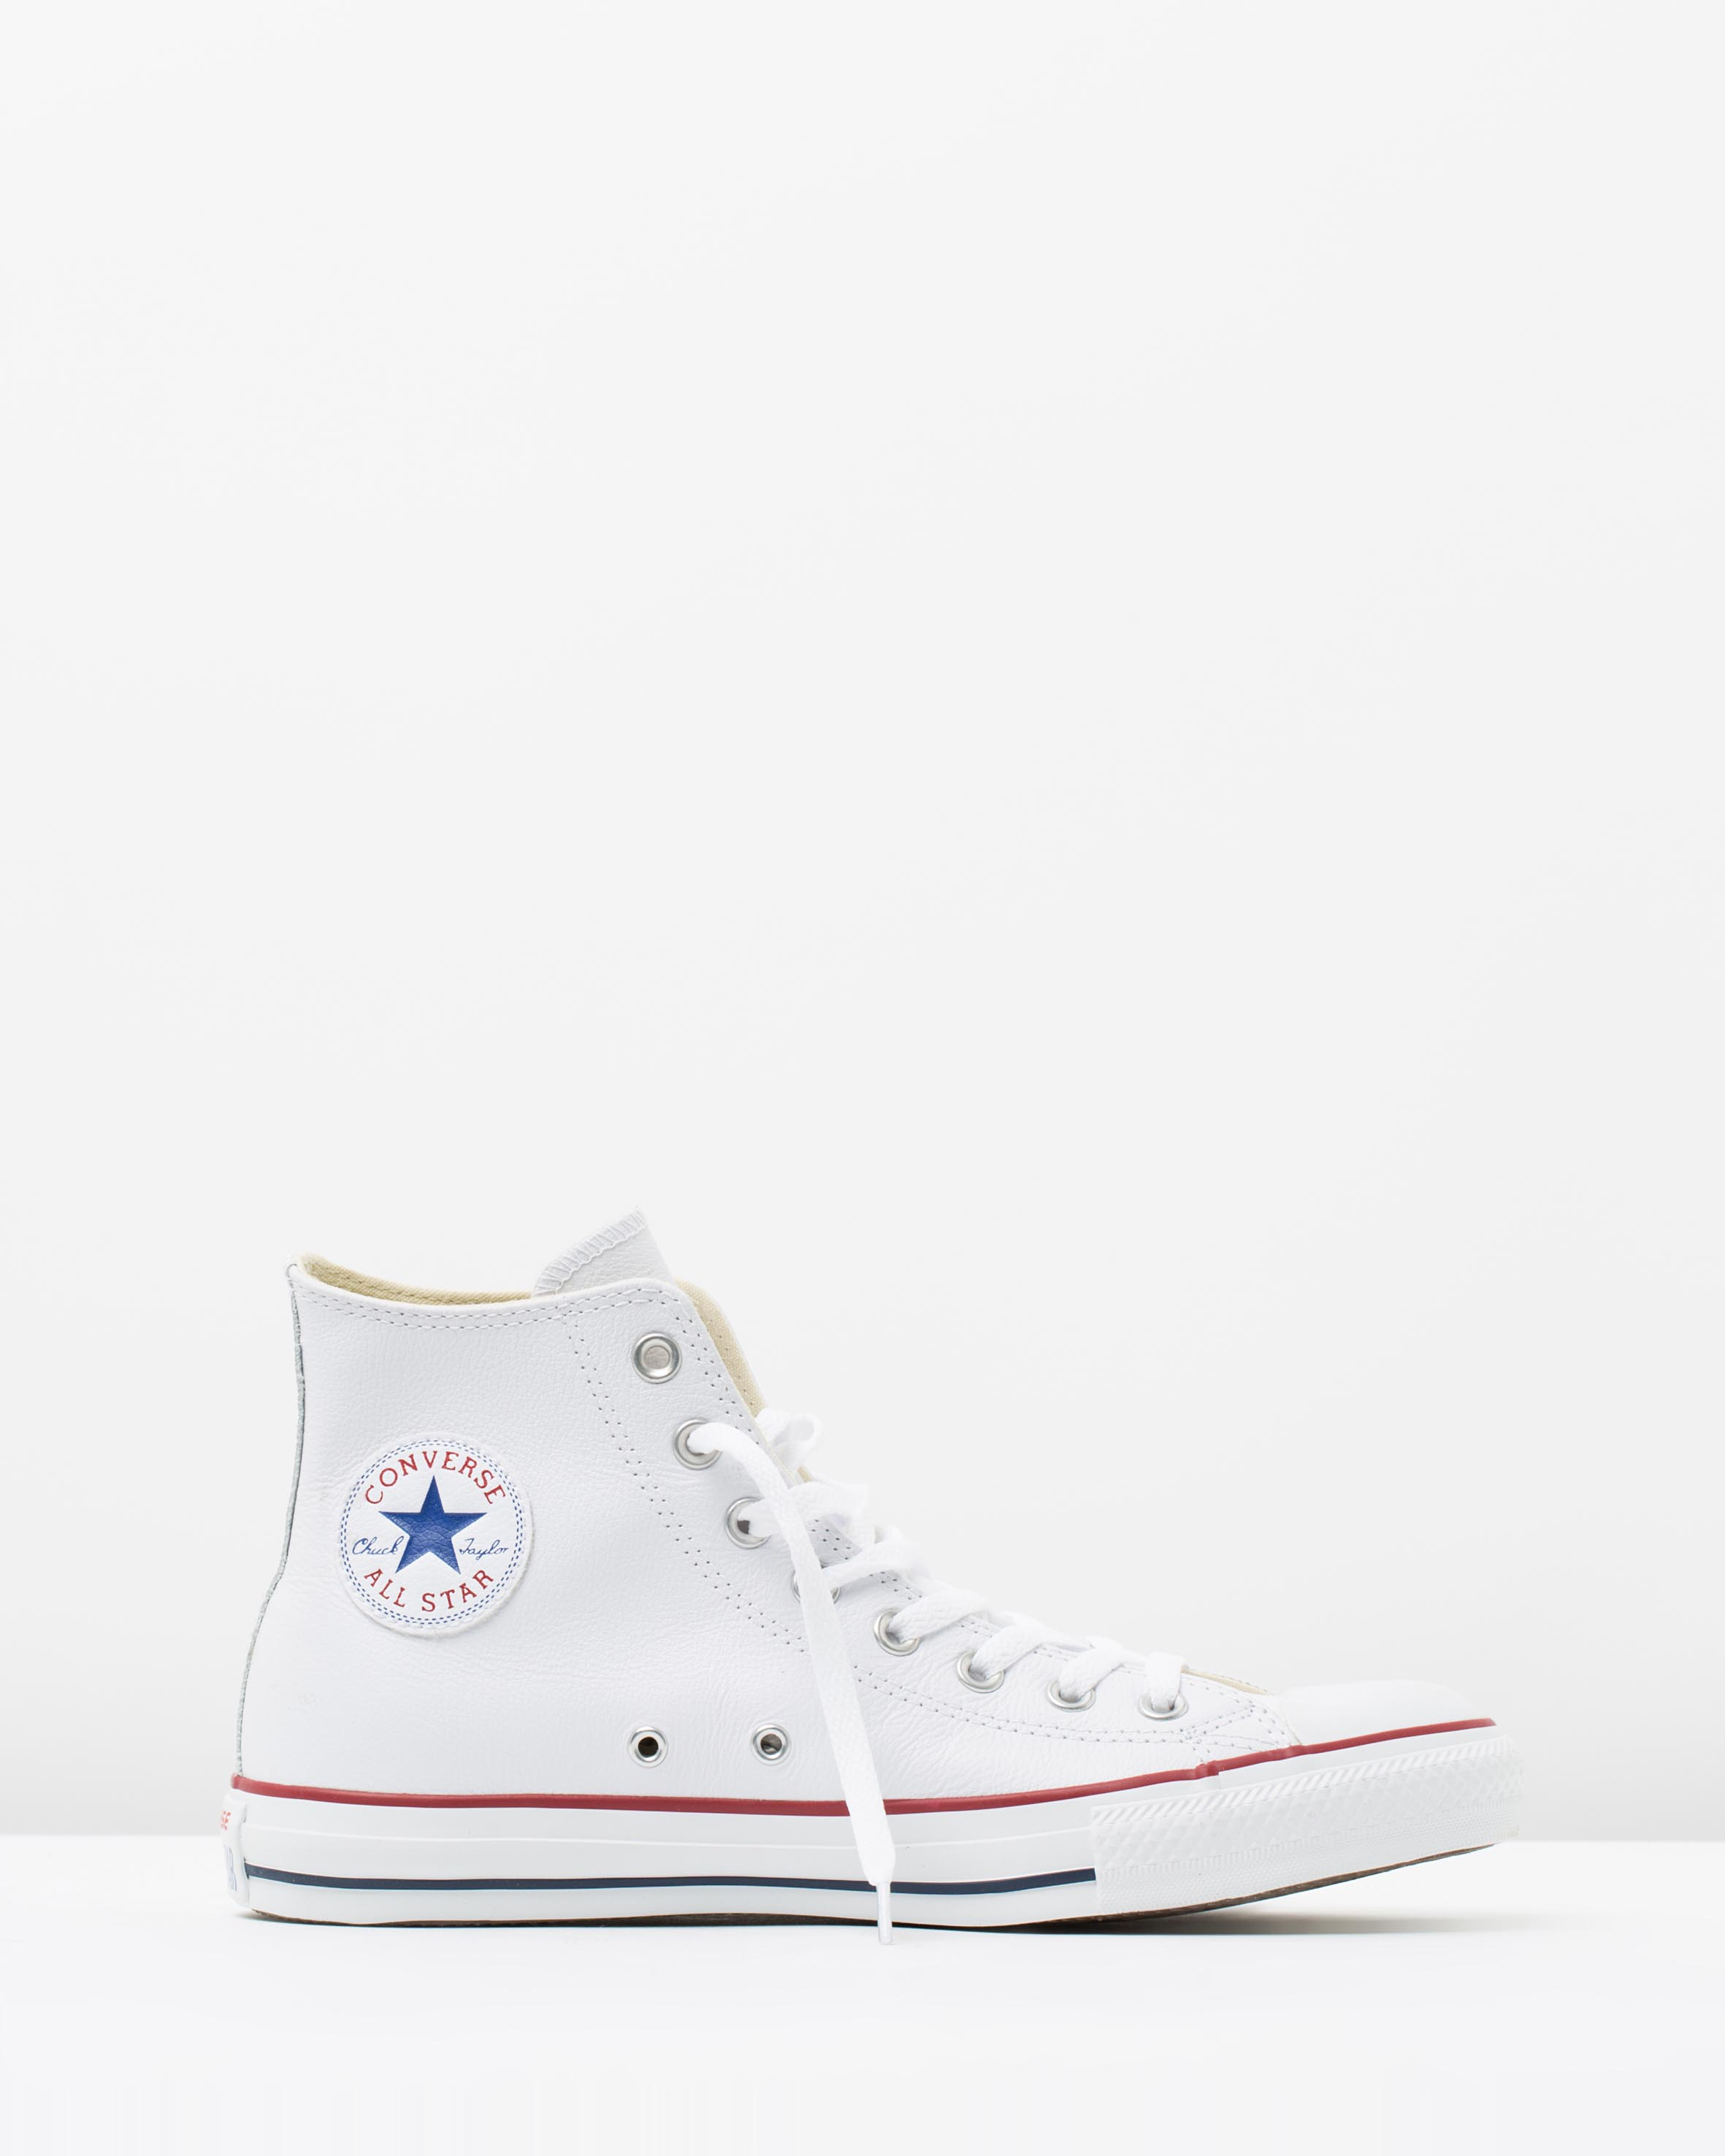 4516a70332b8 Converse Chuck Taylor All Star Leather Hi White 1 ...